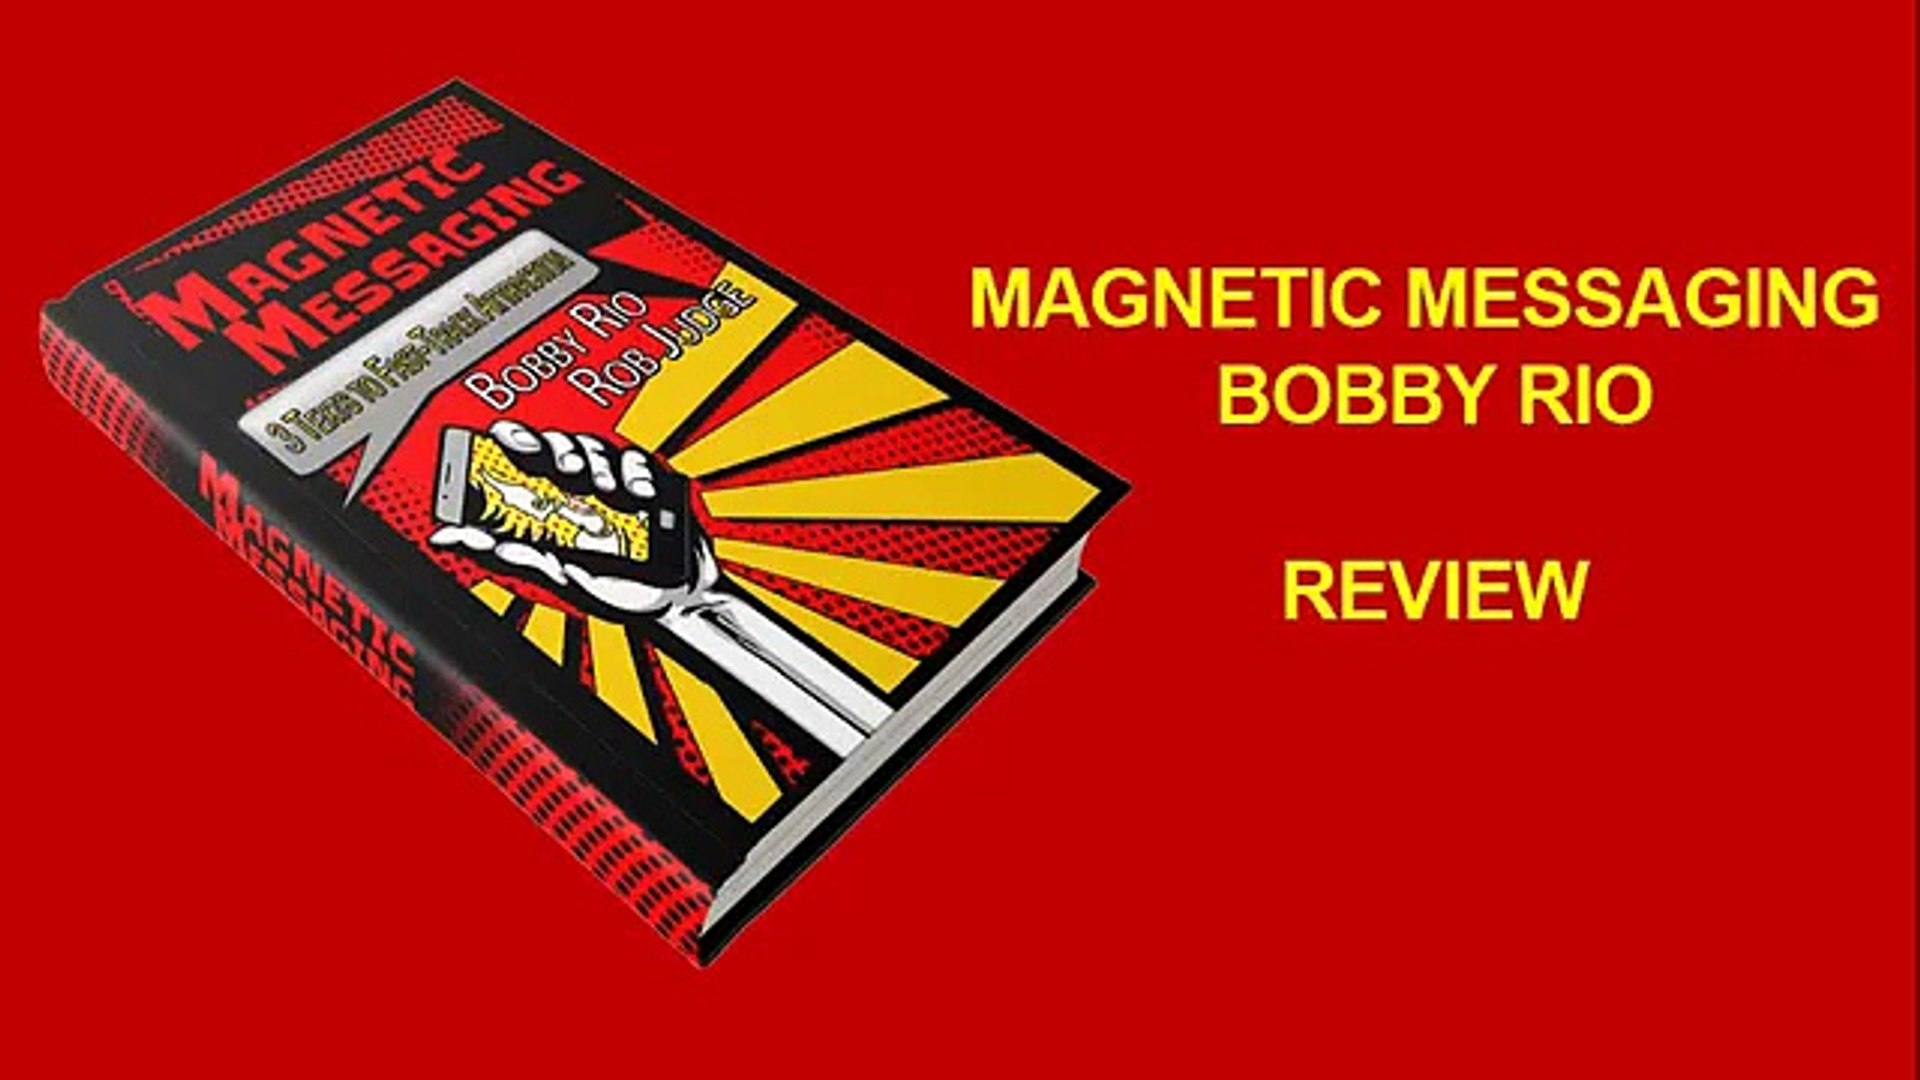 Magnetic Messaging Training Guide Review